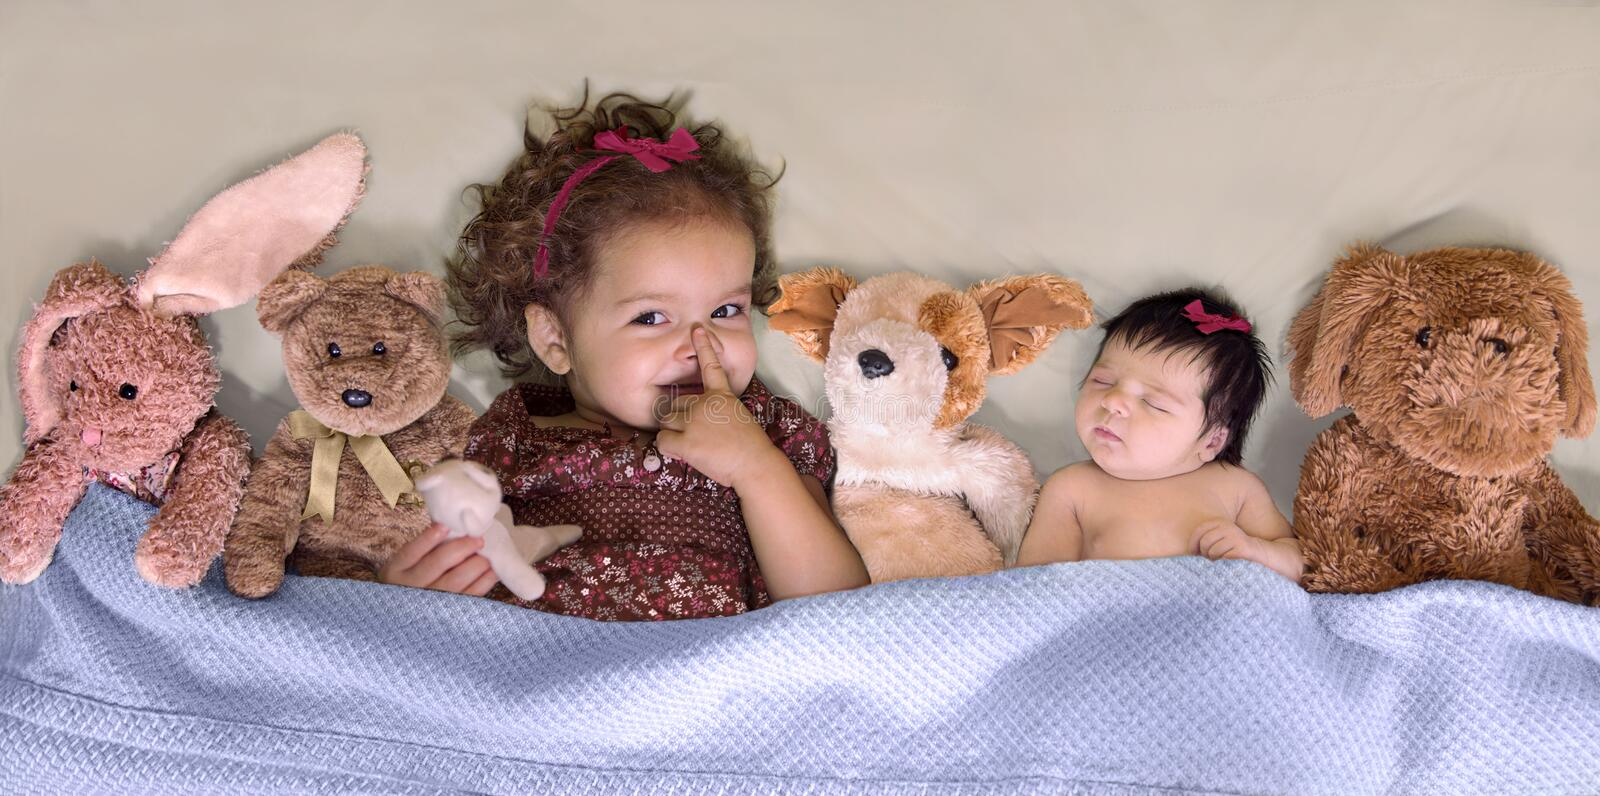 Toddler girl gestures for quiet while baby sister sleeps stock photography